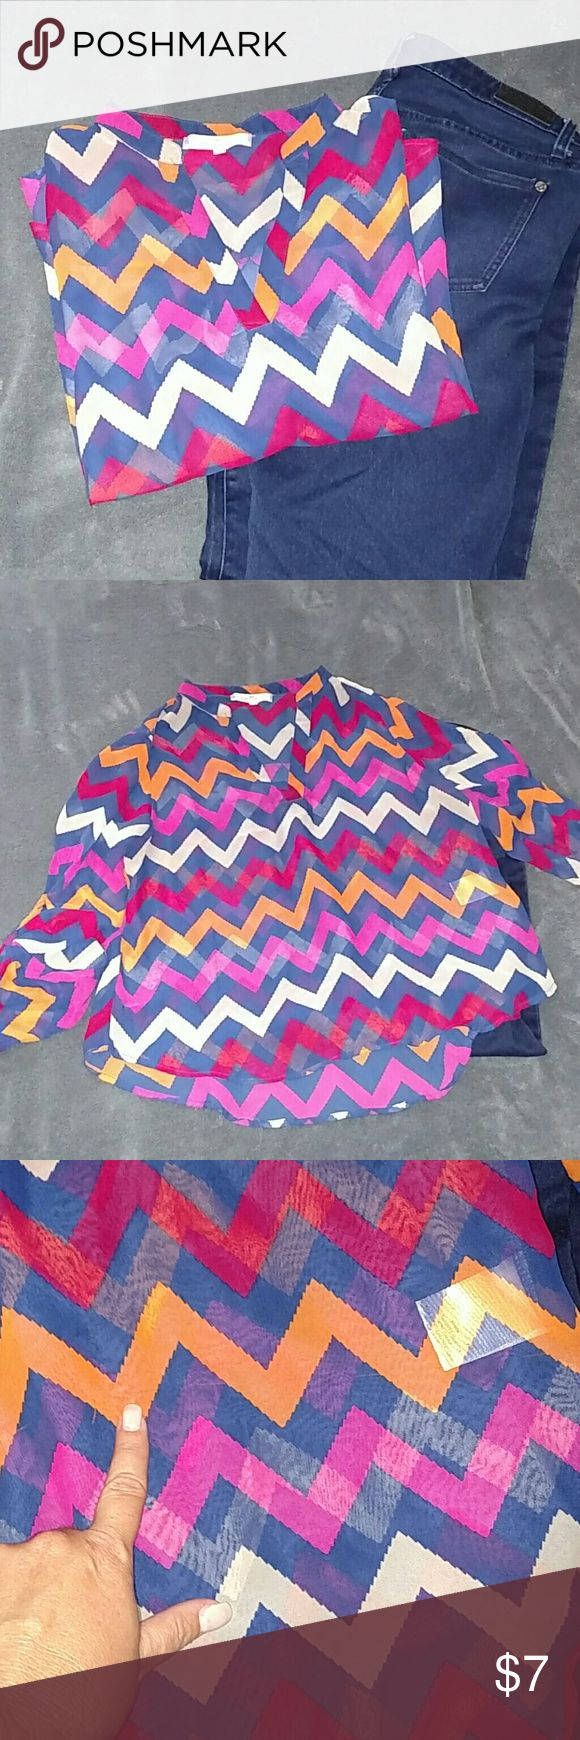 Pretty Chevron Blouse Chevron blouse with beautiful colors: navy blue, fucshia, red, orange, and tan. There's a flaw, it's got 1 pulled thread. Almost Famous Tops Blouses